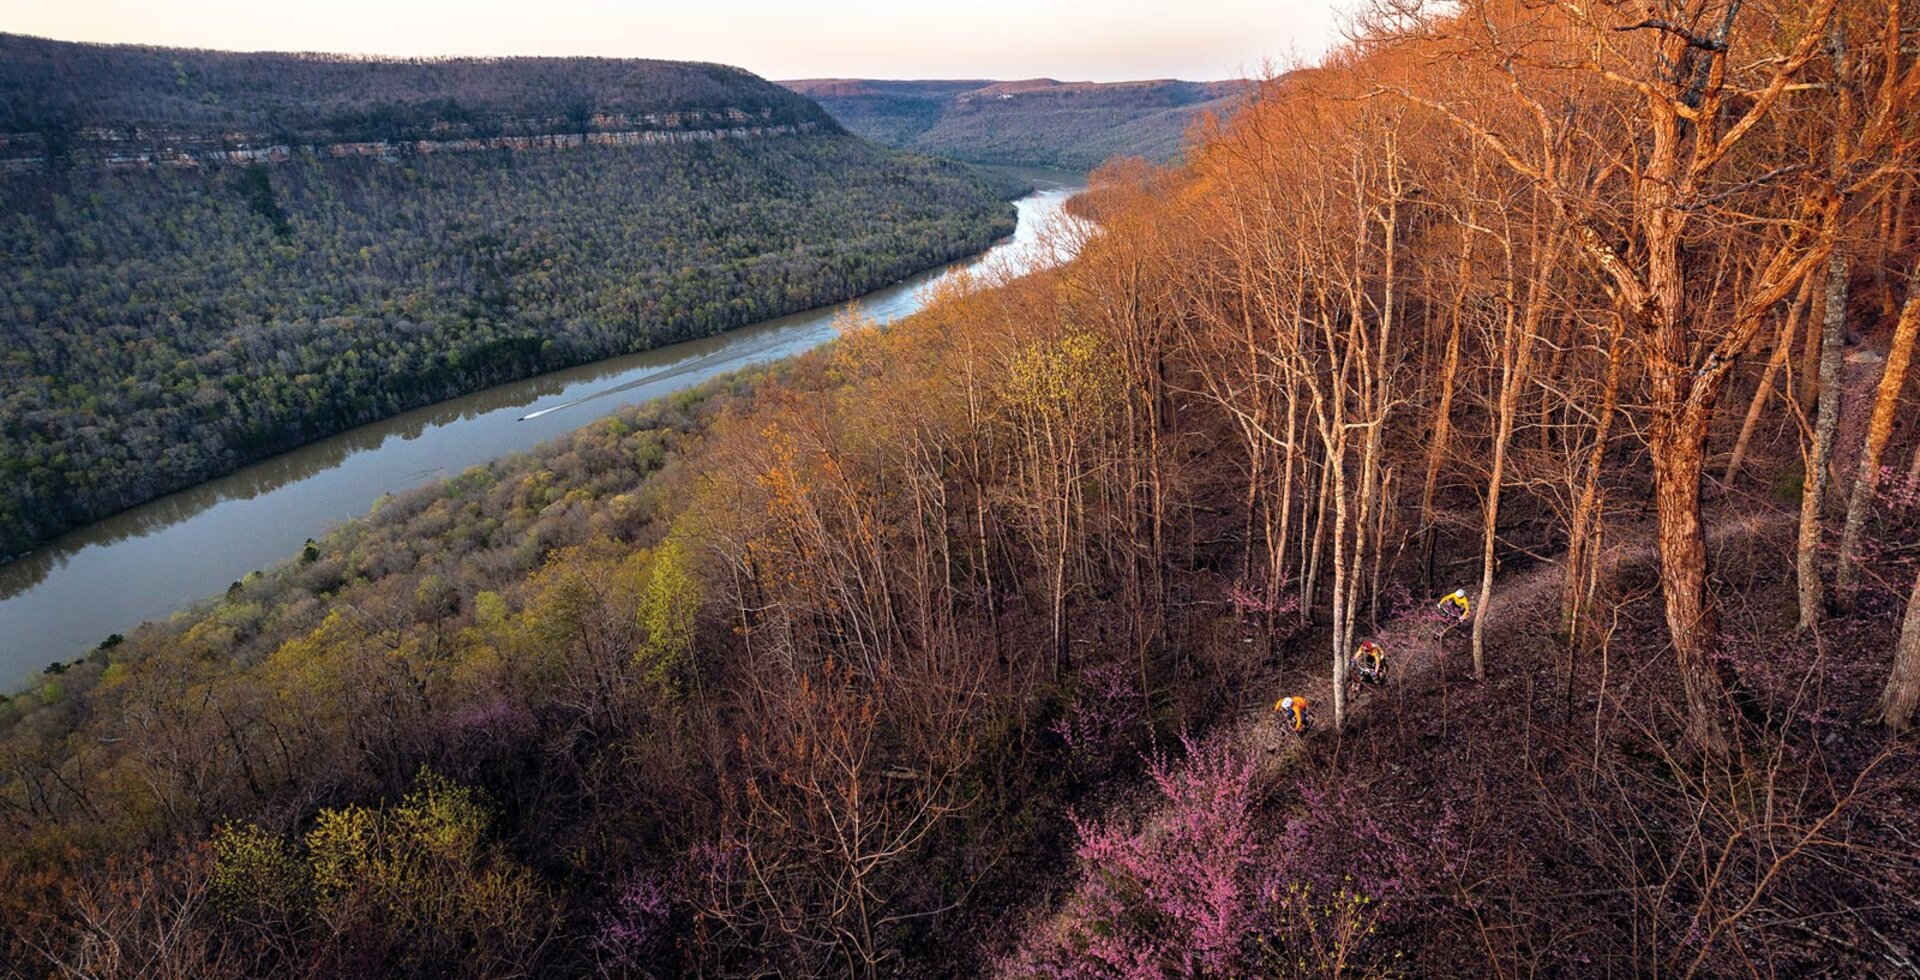 On the lower flanks of Chattanooga's Raccoon Mountain, two ribbons run parallel—one of water, one of dirt. Local riders Les Warnock, Andrew Massey and Mark Przybysz would be enjoying sweeping views of the Tennessee River if they weren't so focused on the trail.